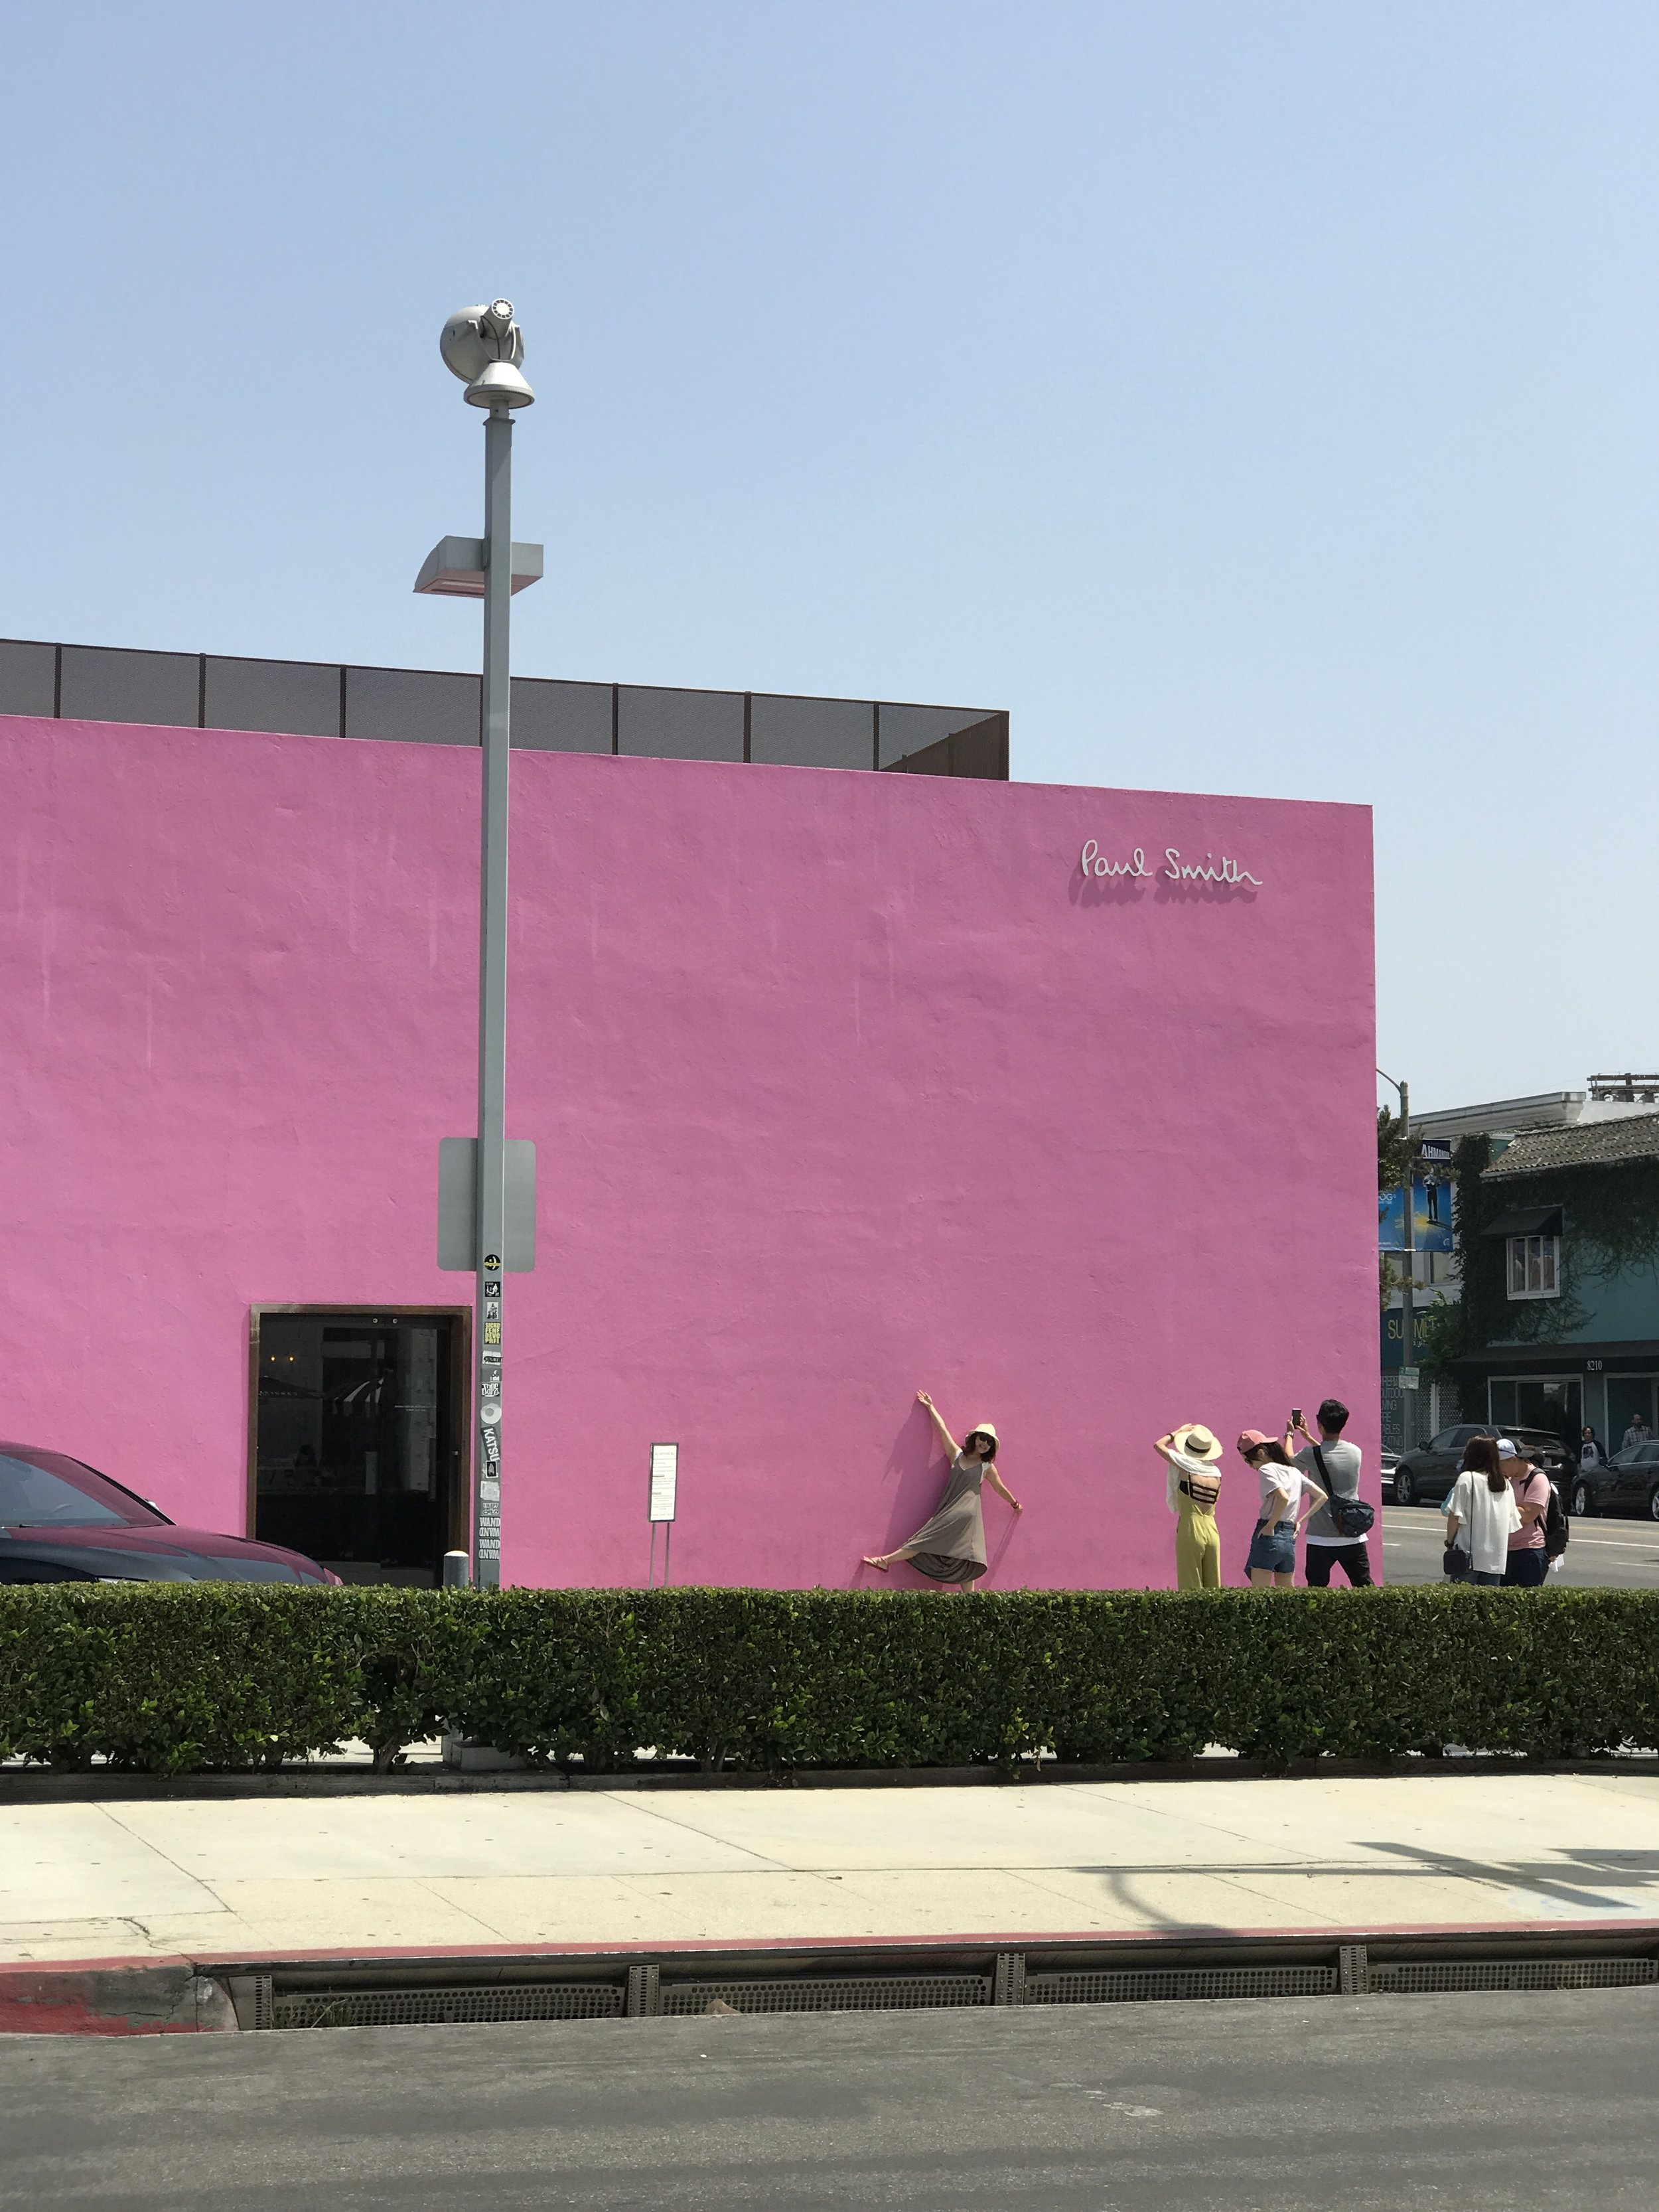 Paul Smith Pink Wall Building Instagram Photo Spot